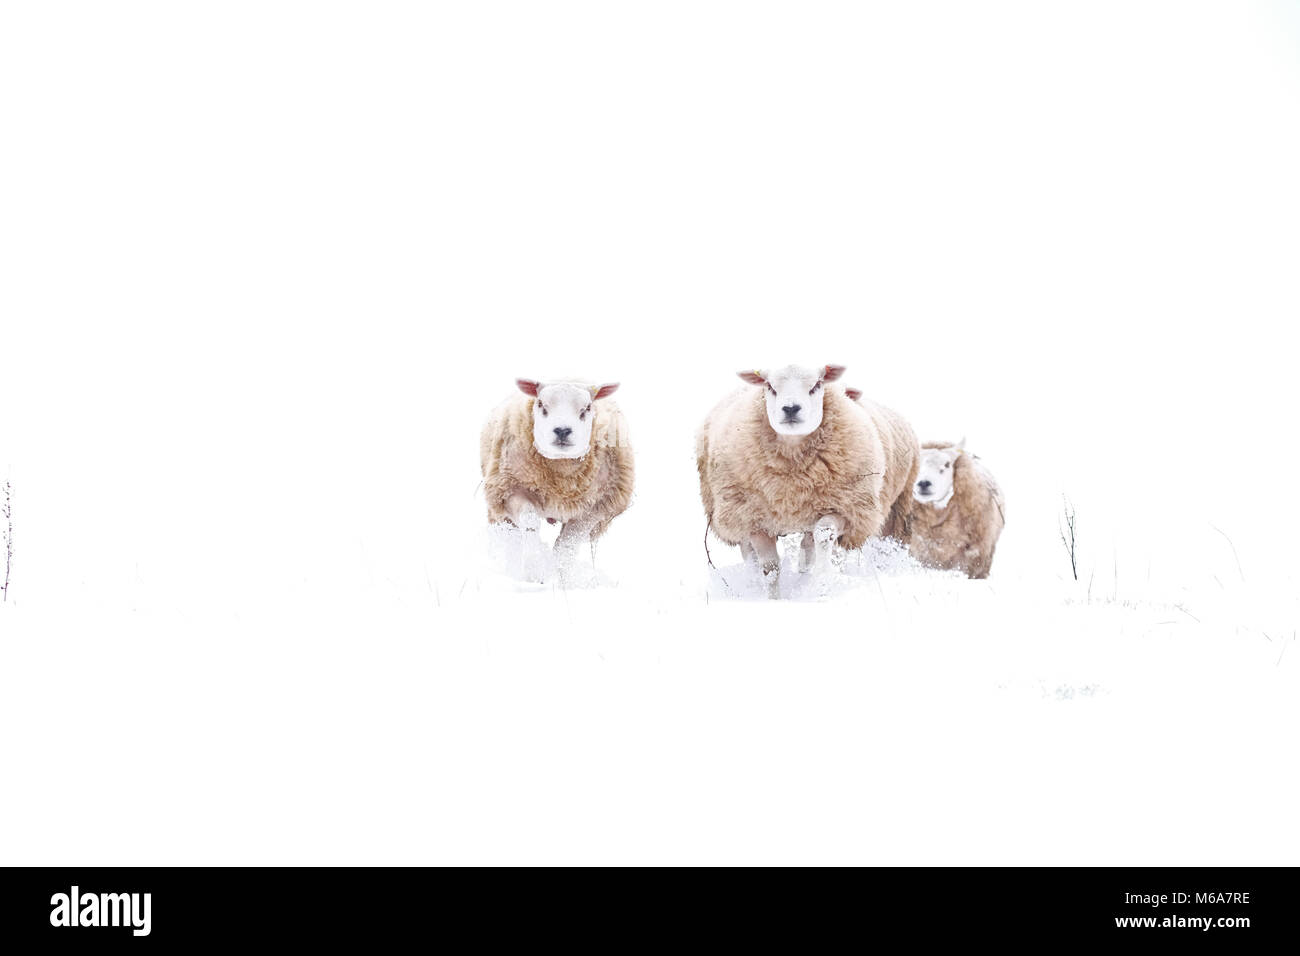 Titley, Herefordshire, UK - Friday 2nd March 2018 - A small group of rams move through deep snow among the hillsides - Stock Image